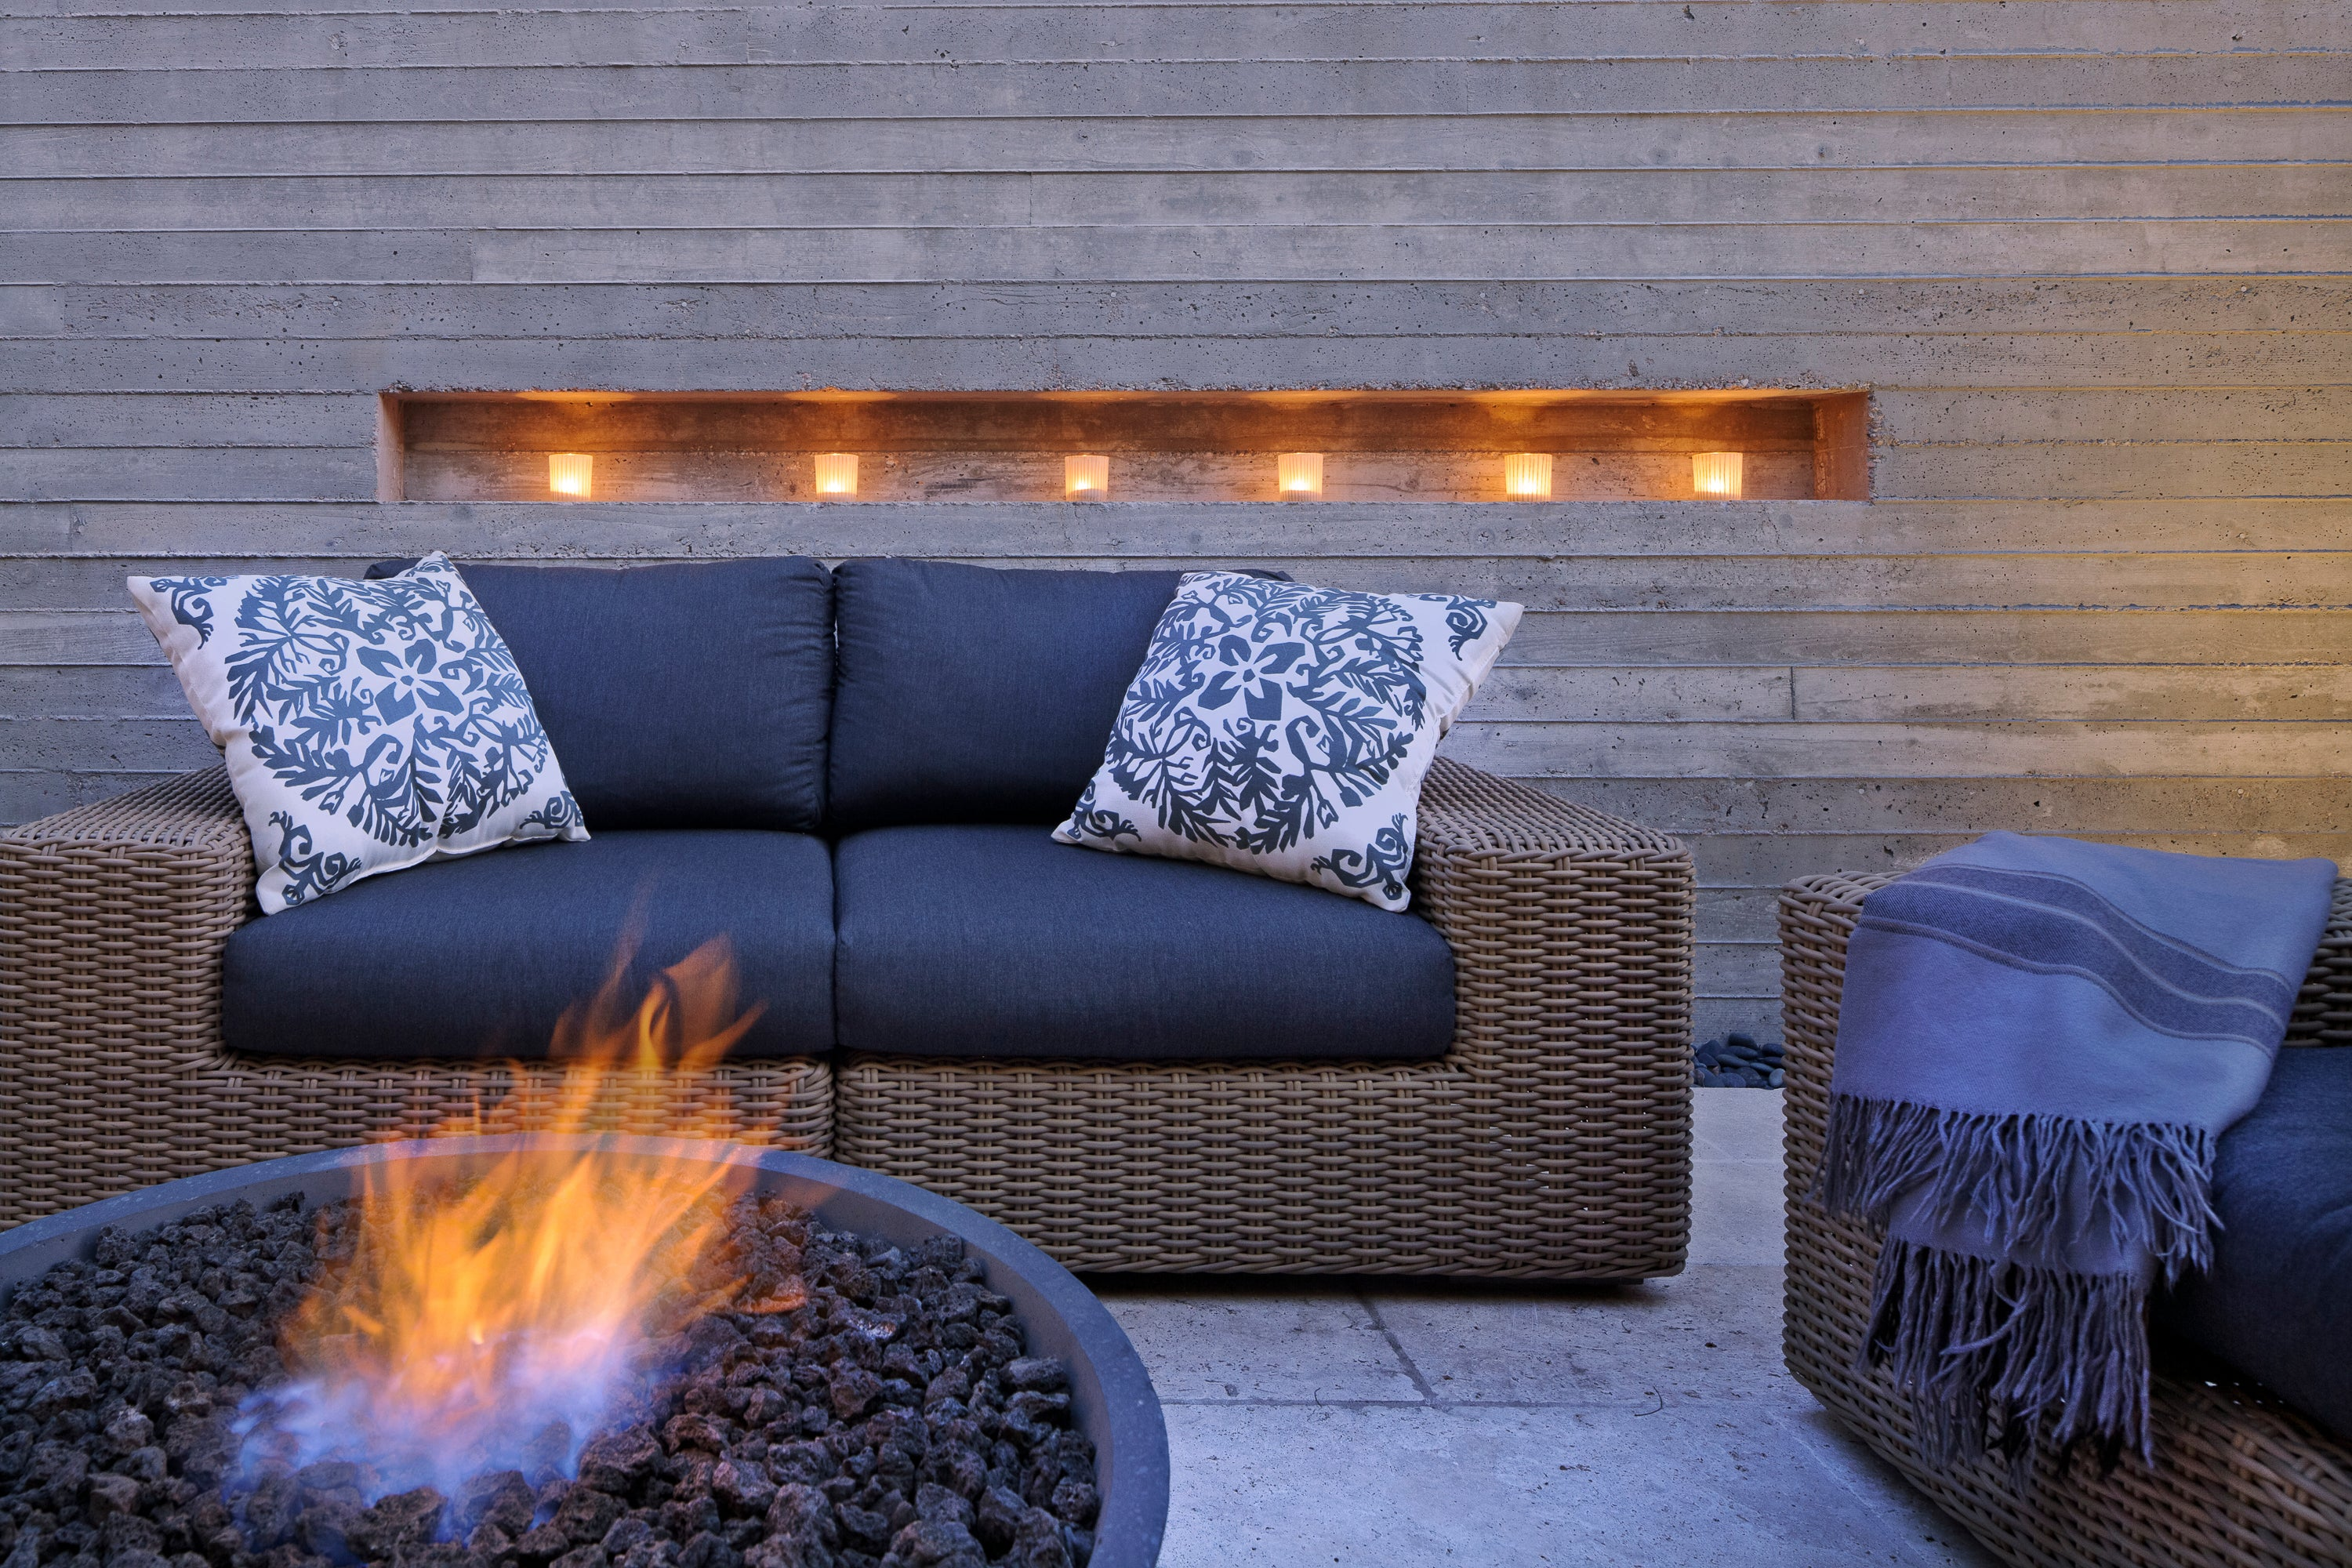 Zen Fire Pit at Private Residence Outdoor Room